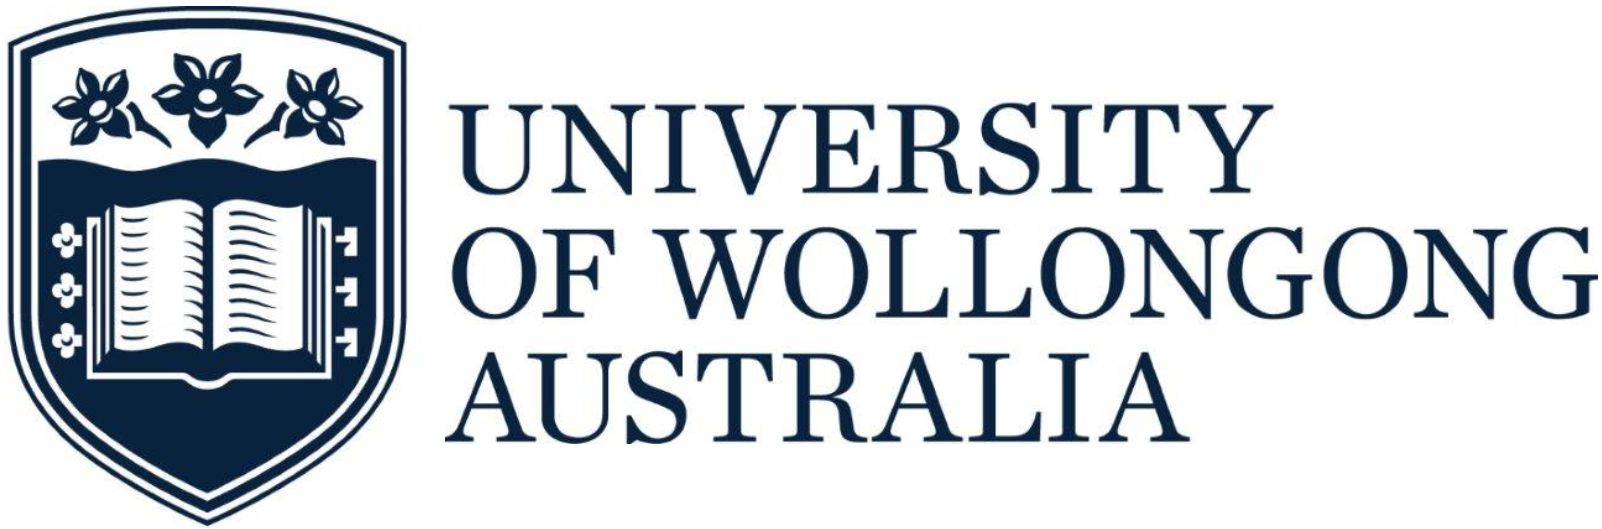 University of Wollongong, NWS